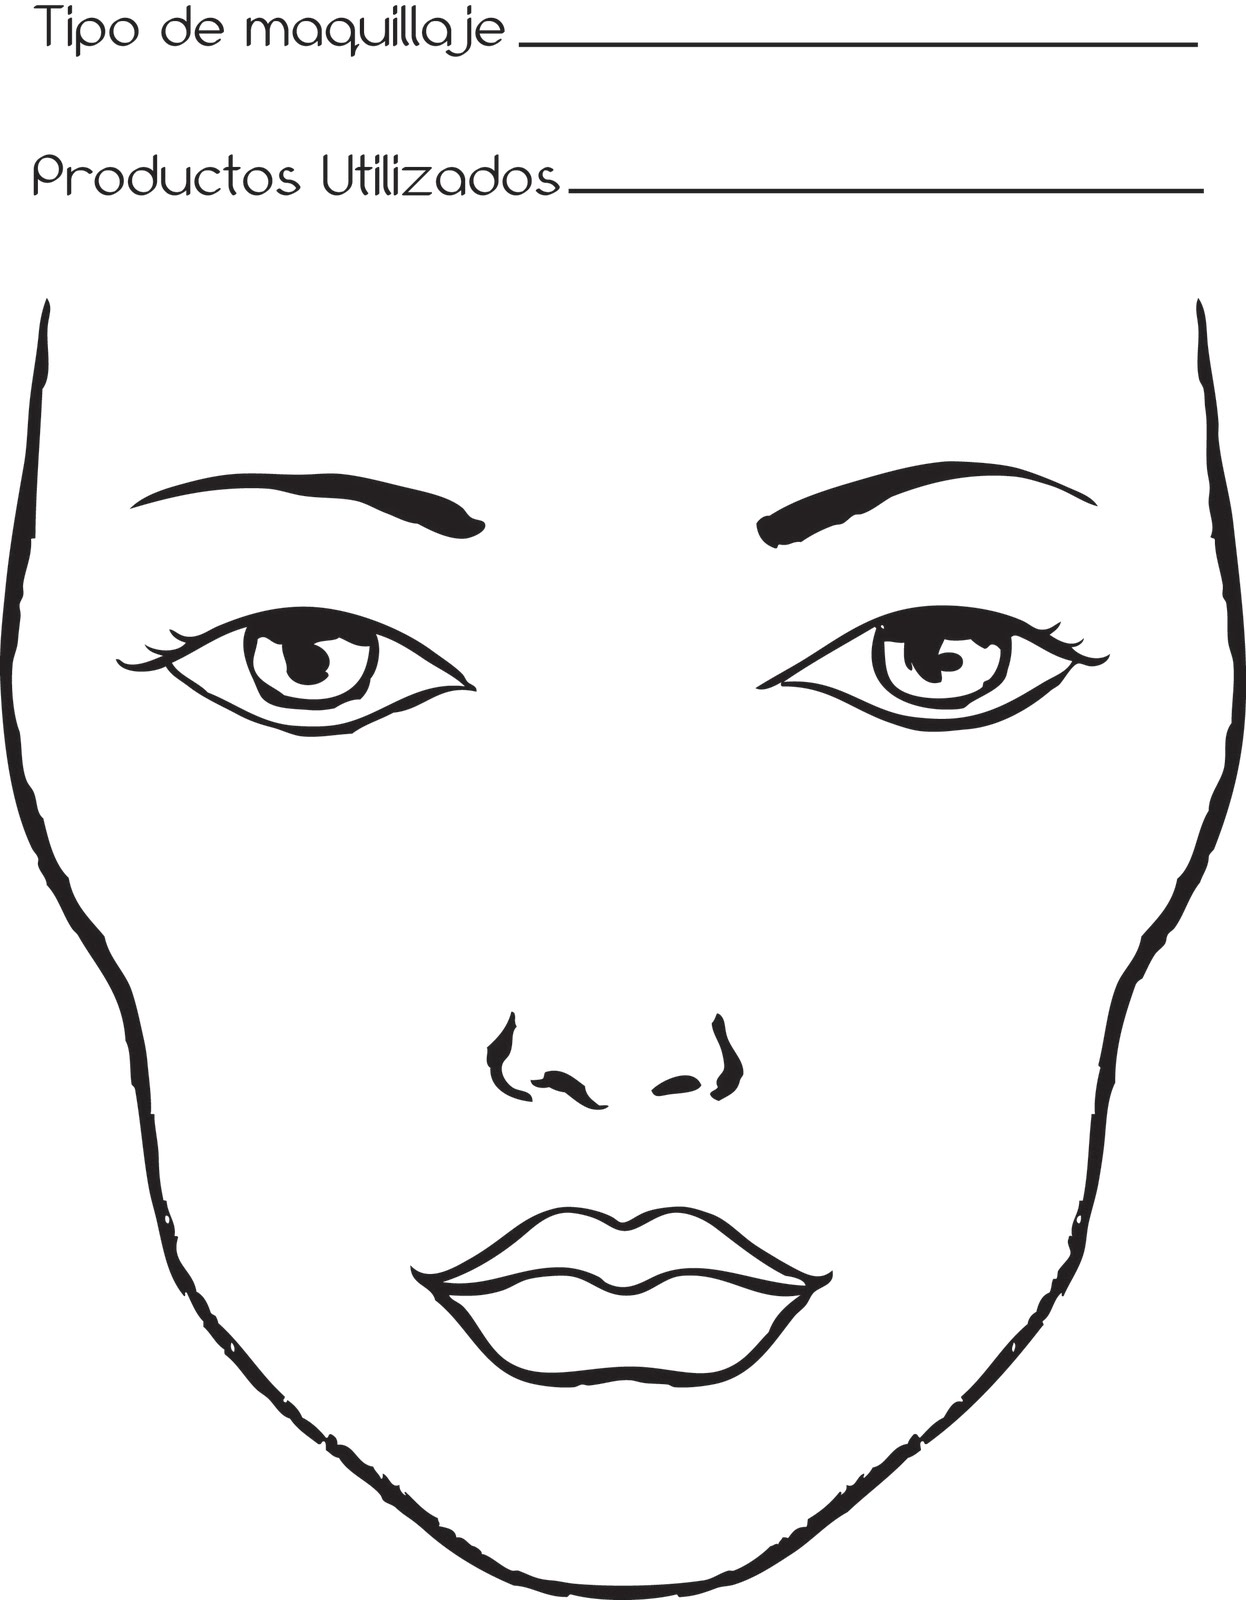 Todo lo imaginable es posible: Face chart